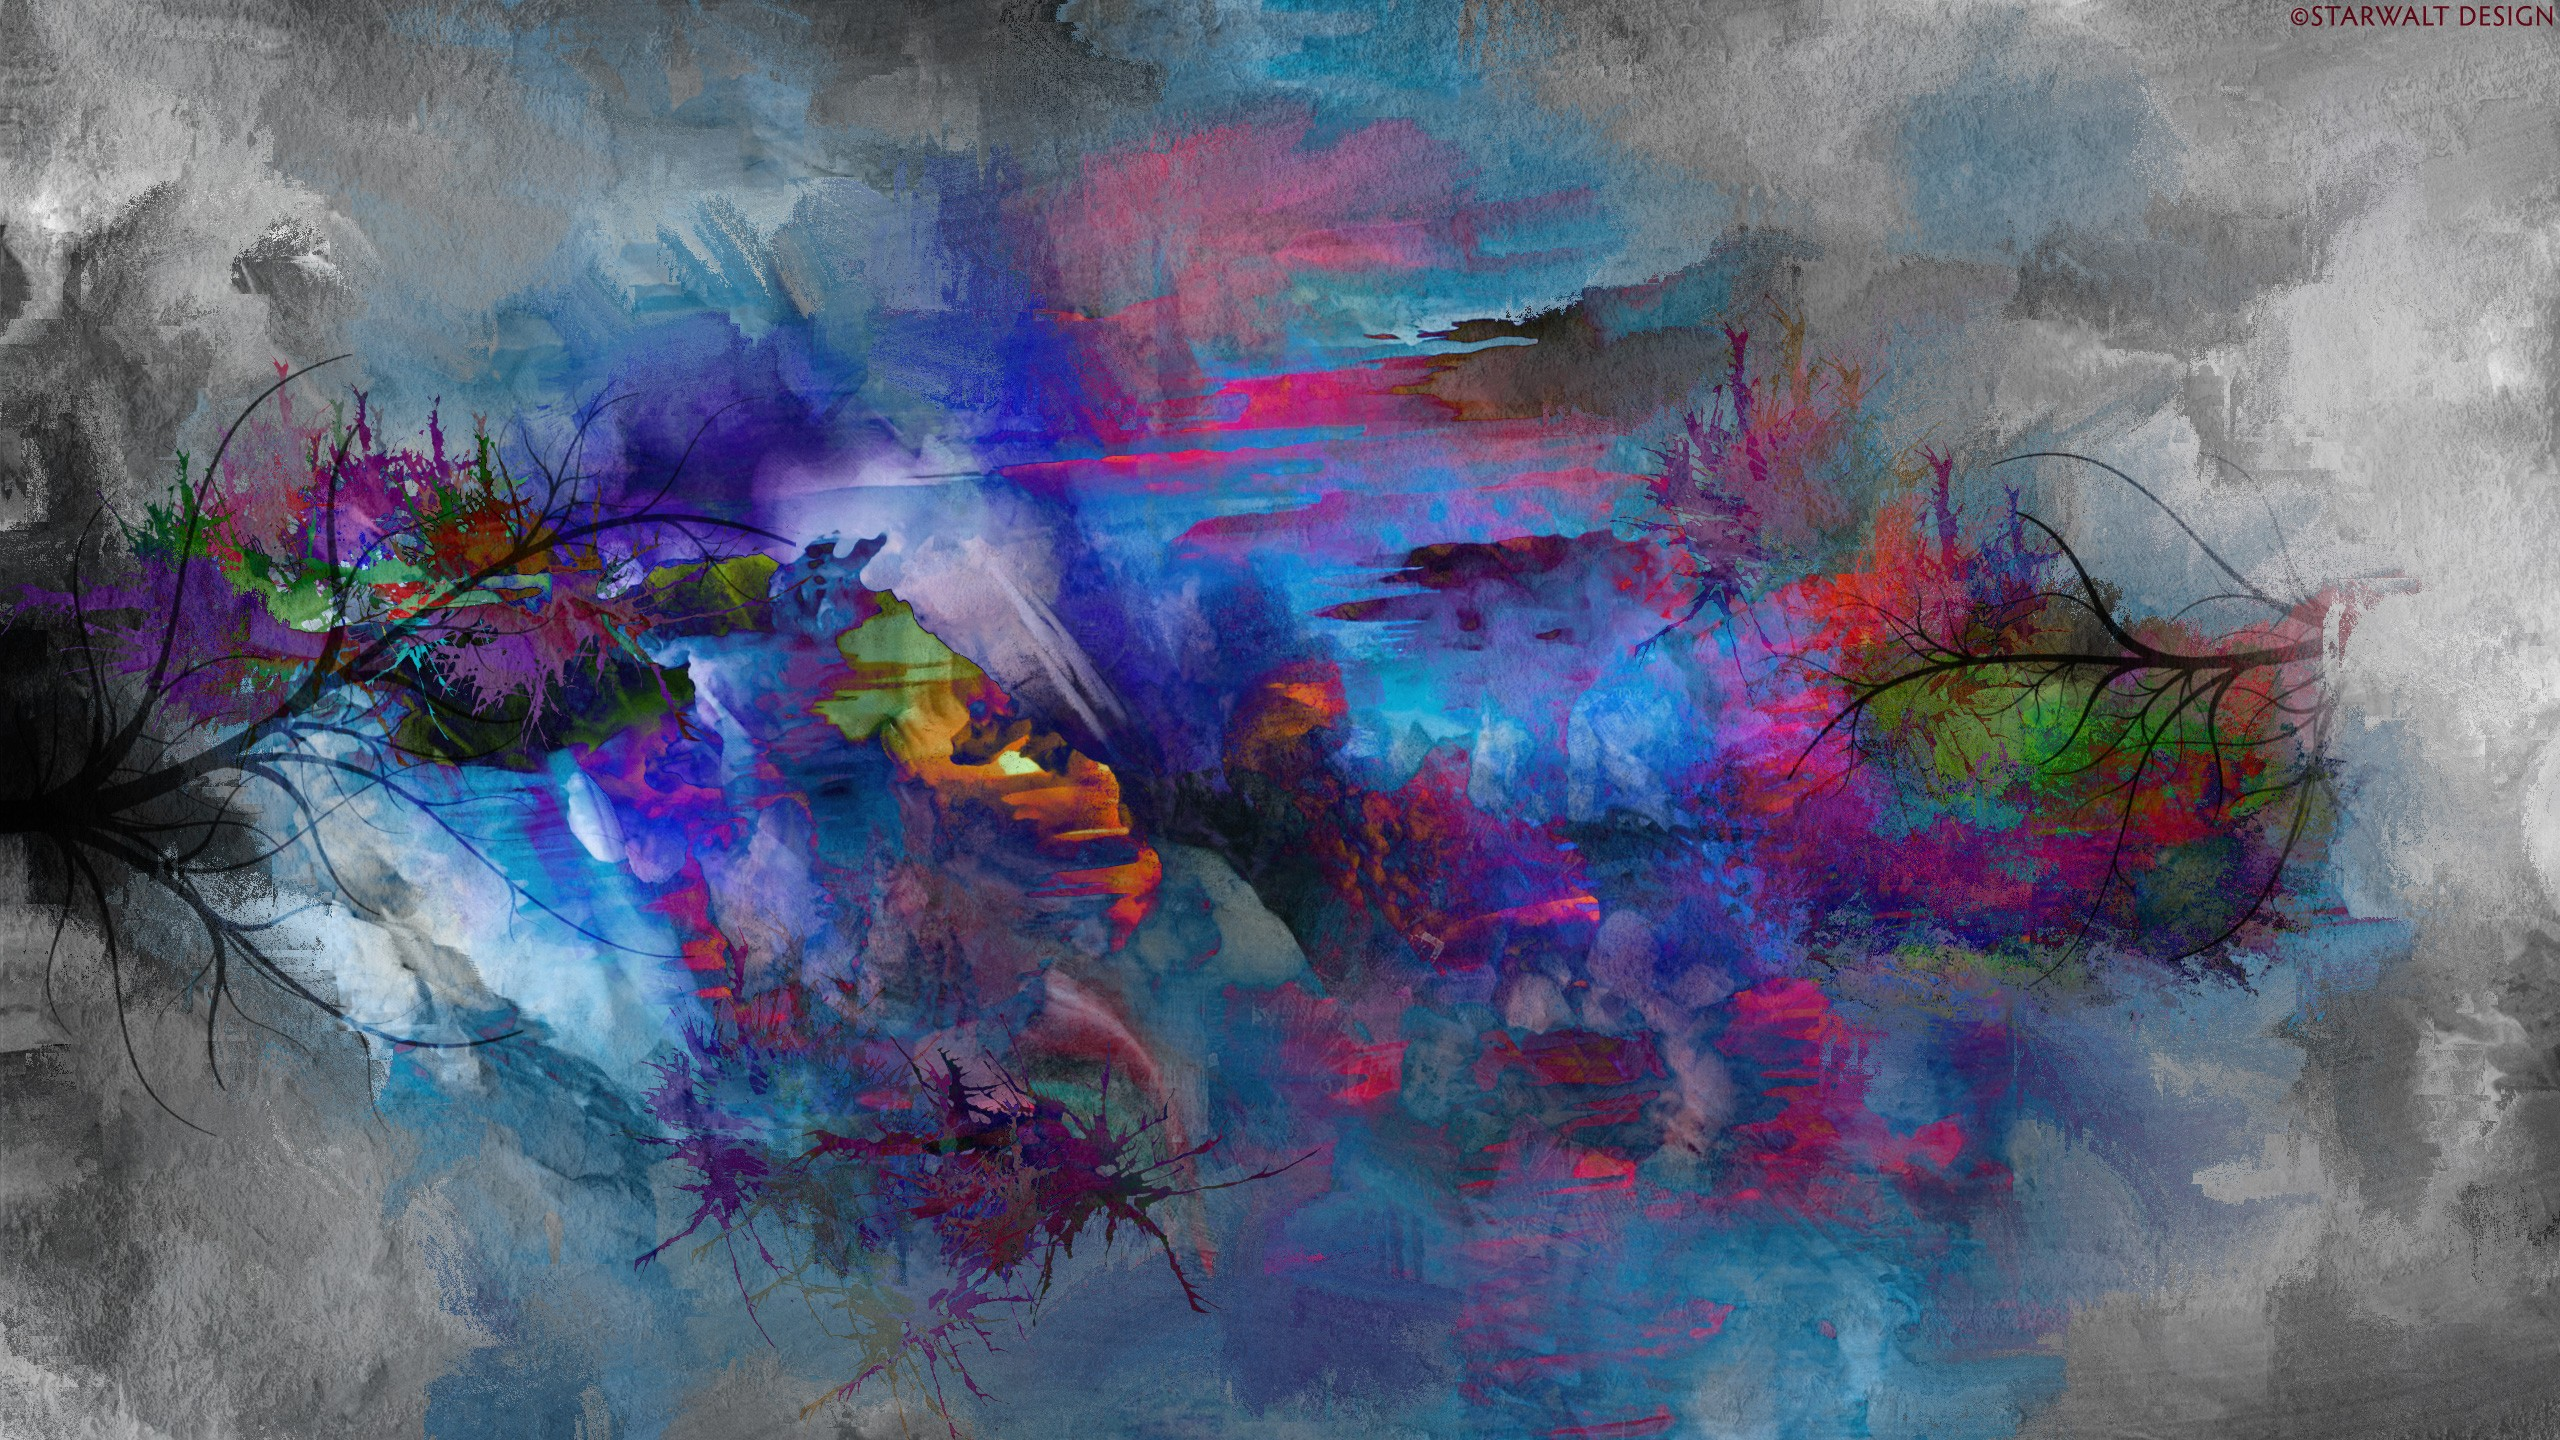 Abstract Painting Nature wallpaper   1248636 2560x1440